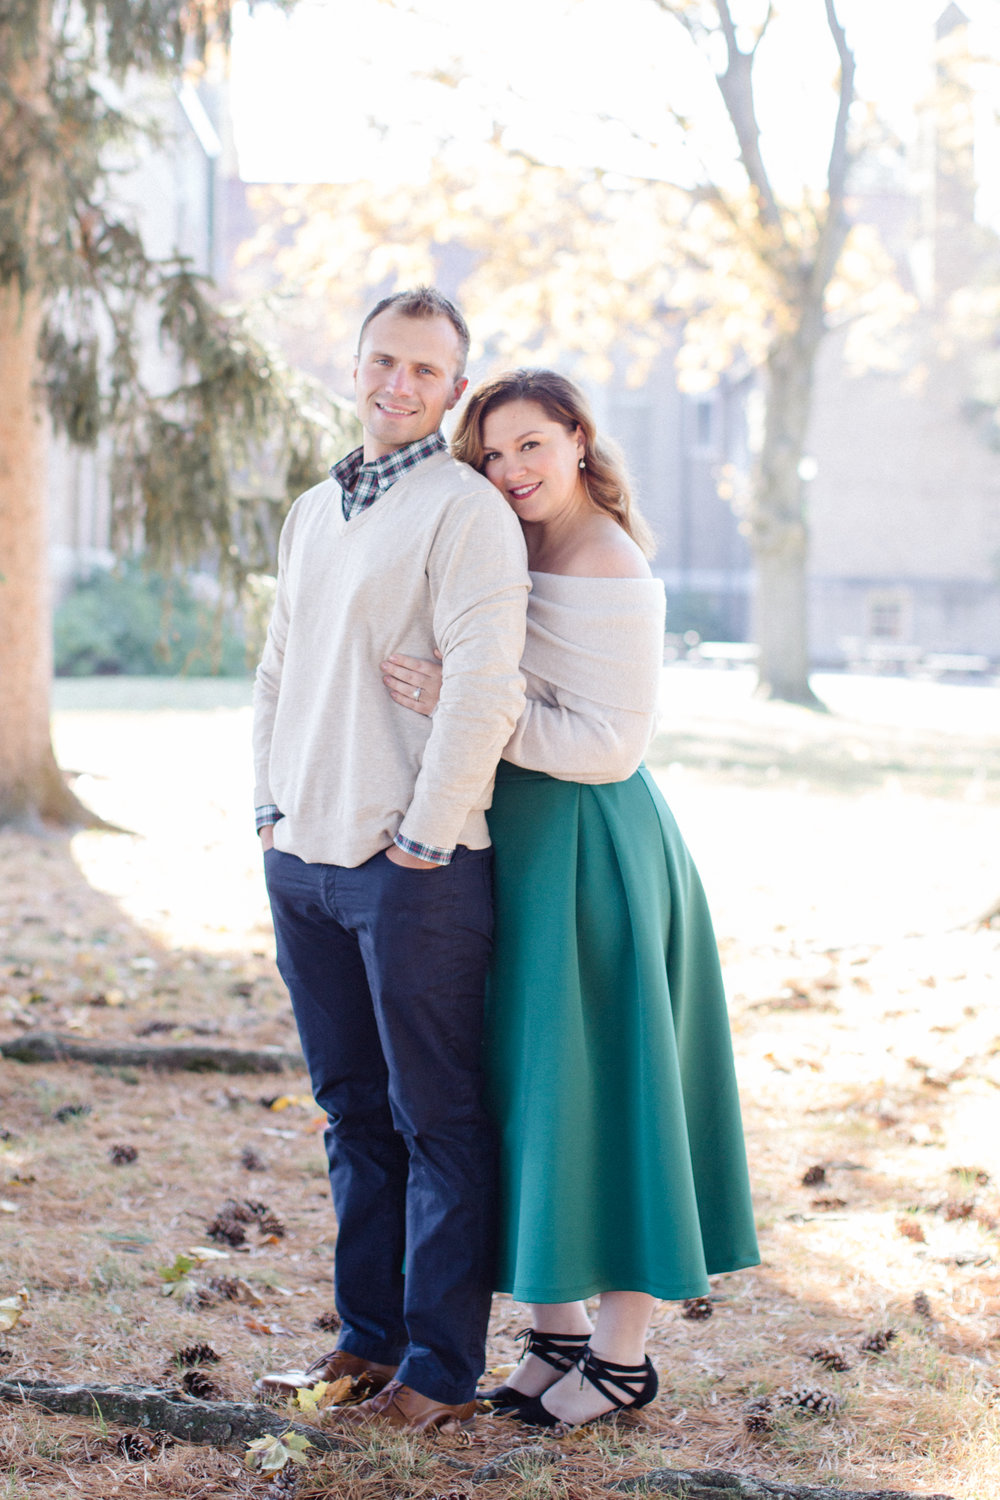 Clarks Summit PA Fall Engagement Anniversary Session Photos SP_JDP-21.jpg